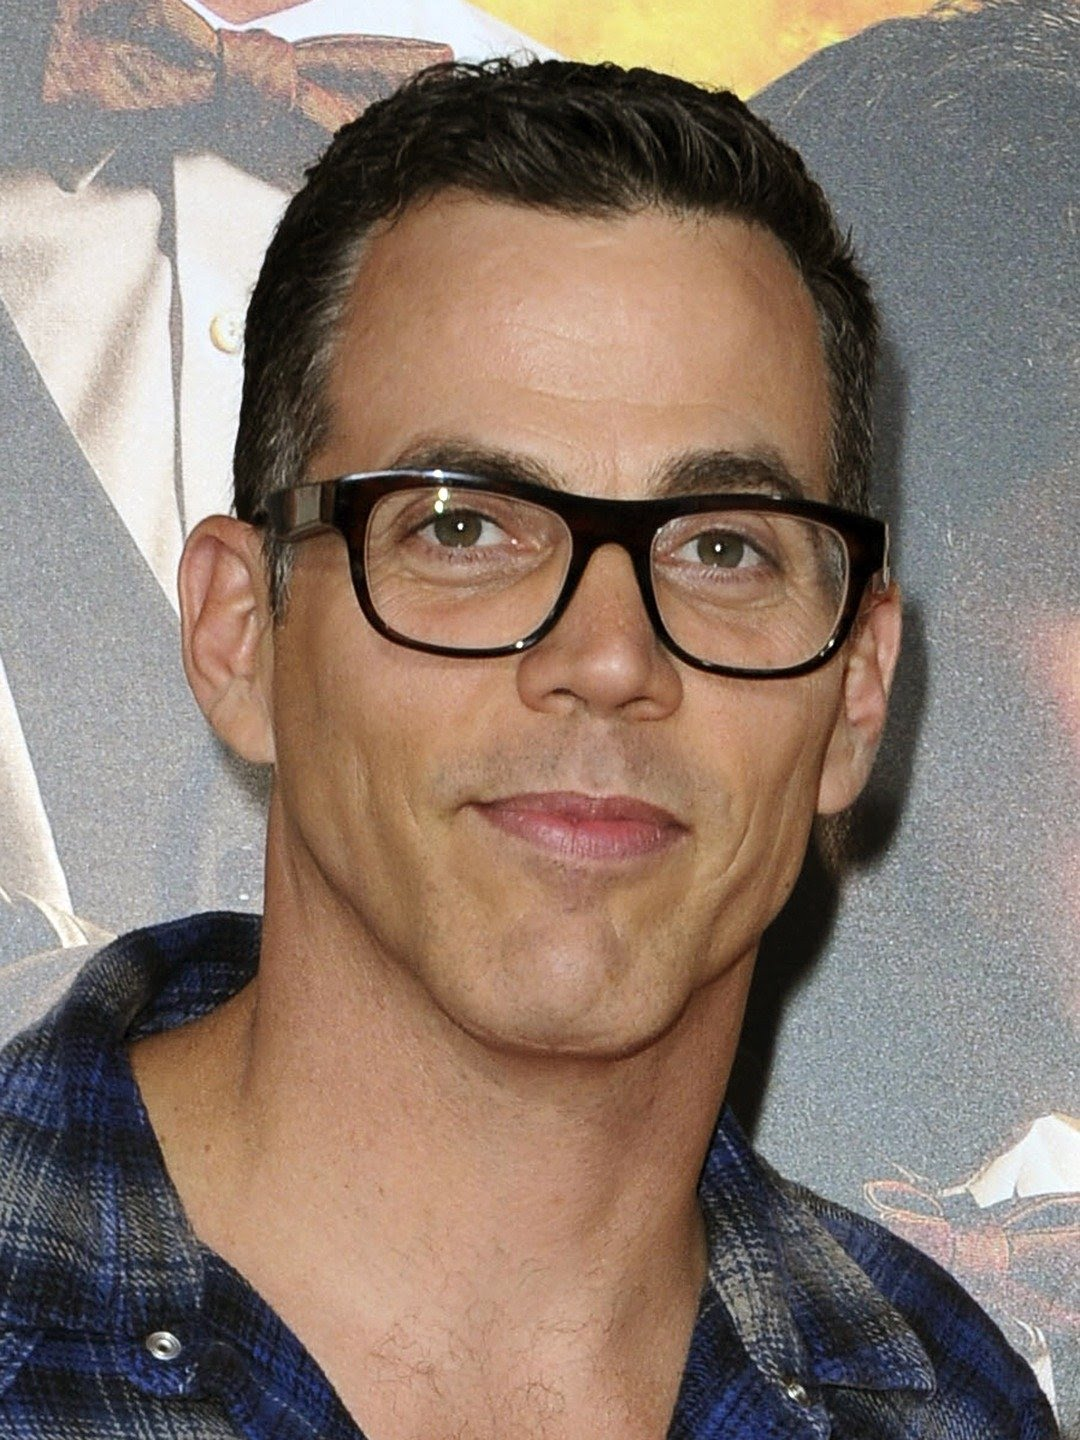 Worth of Steve O for this year